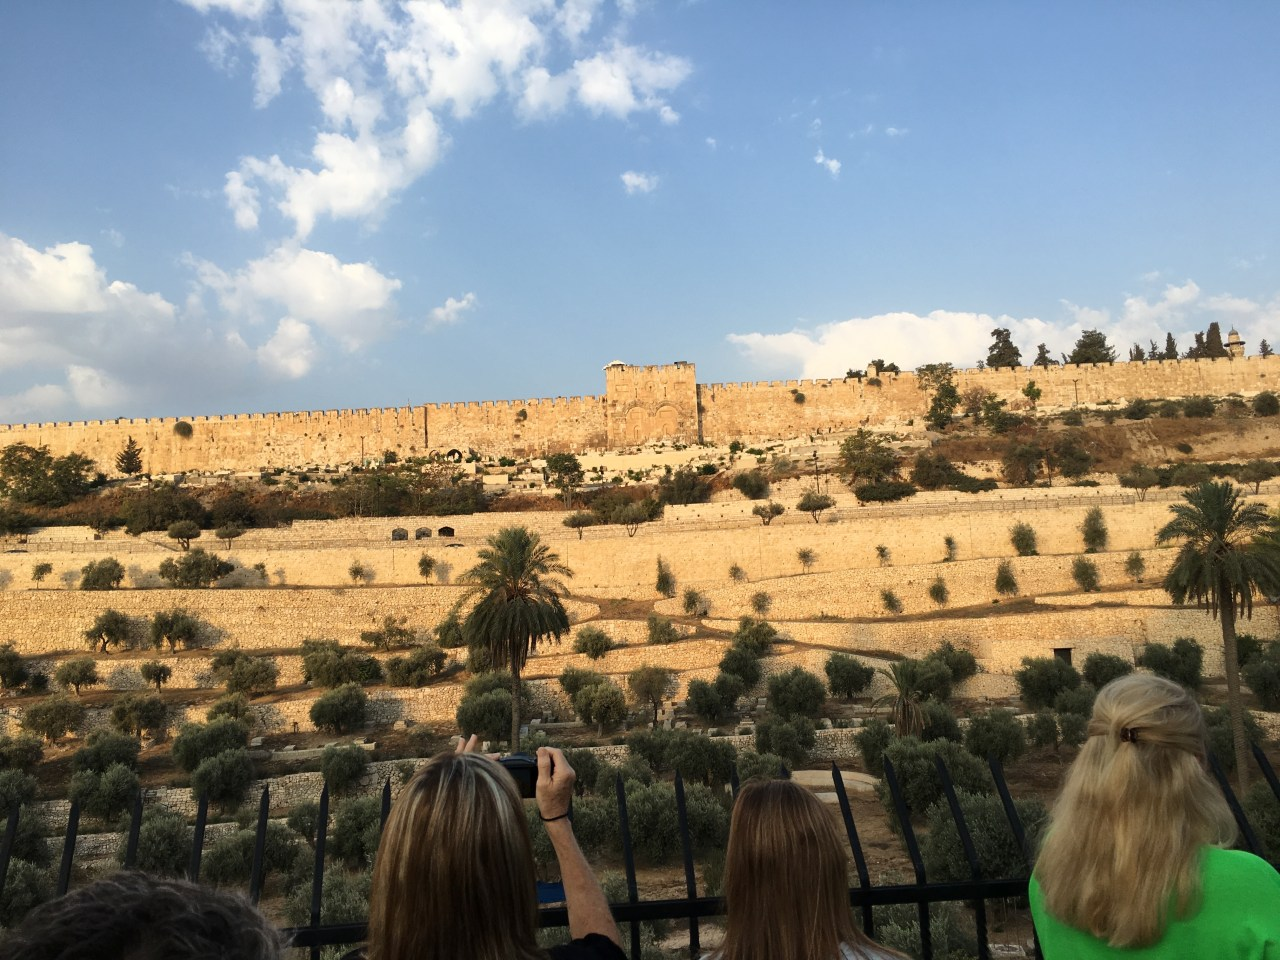 Looking at the Beautiful Gate from the Mount of Olives.